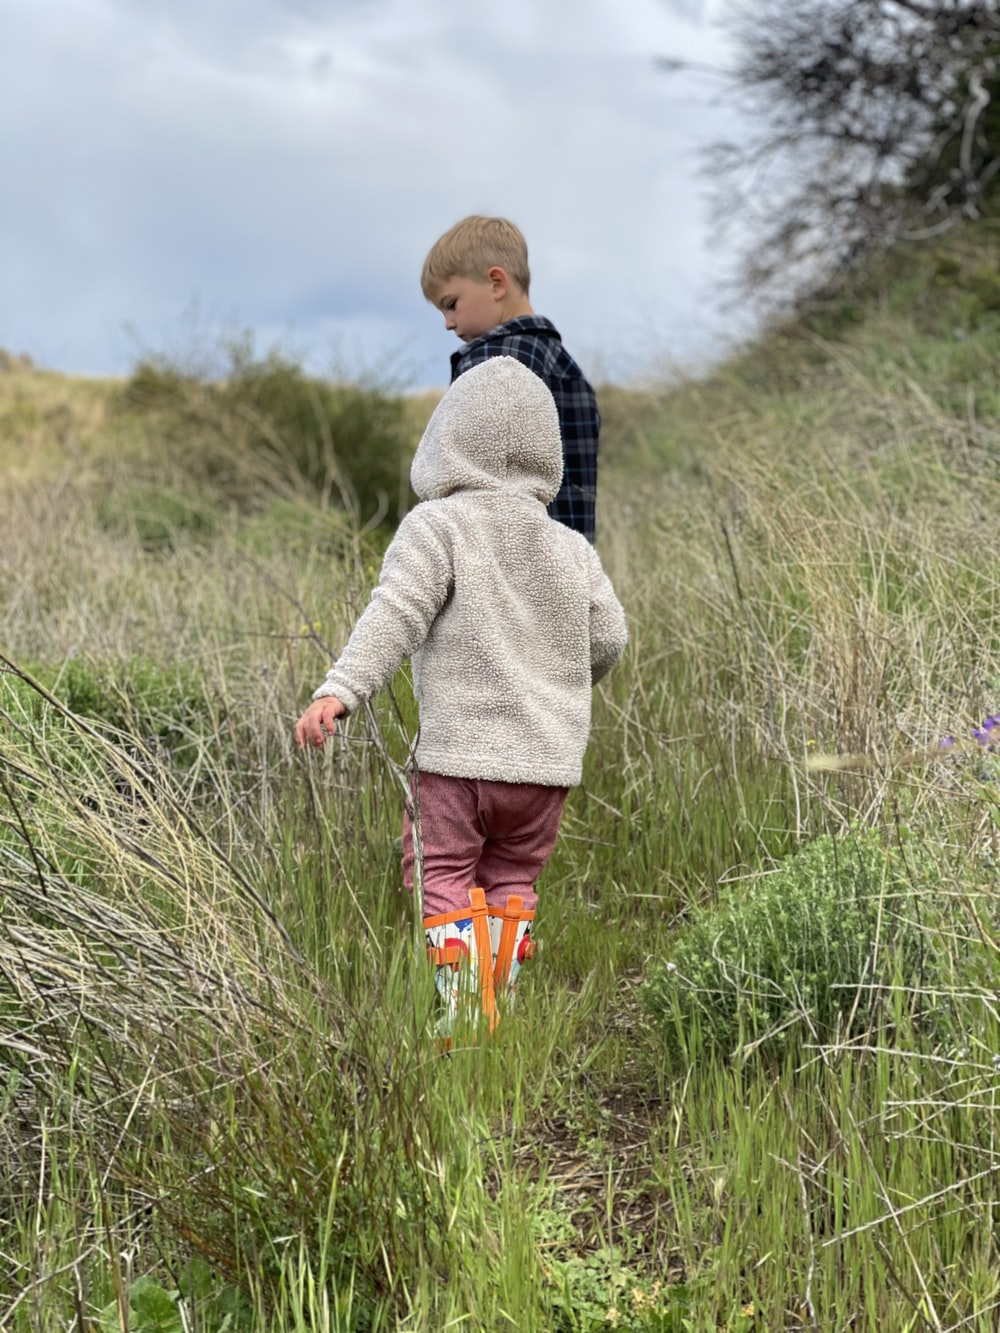 boy in gray hoodie walking on green grass field during daytime